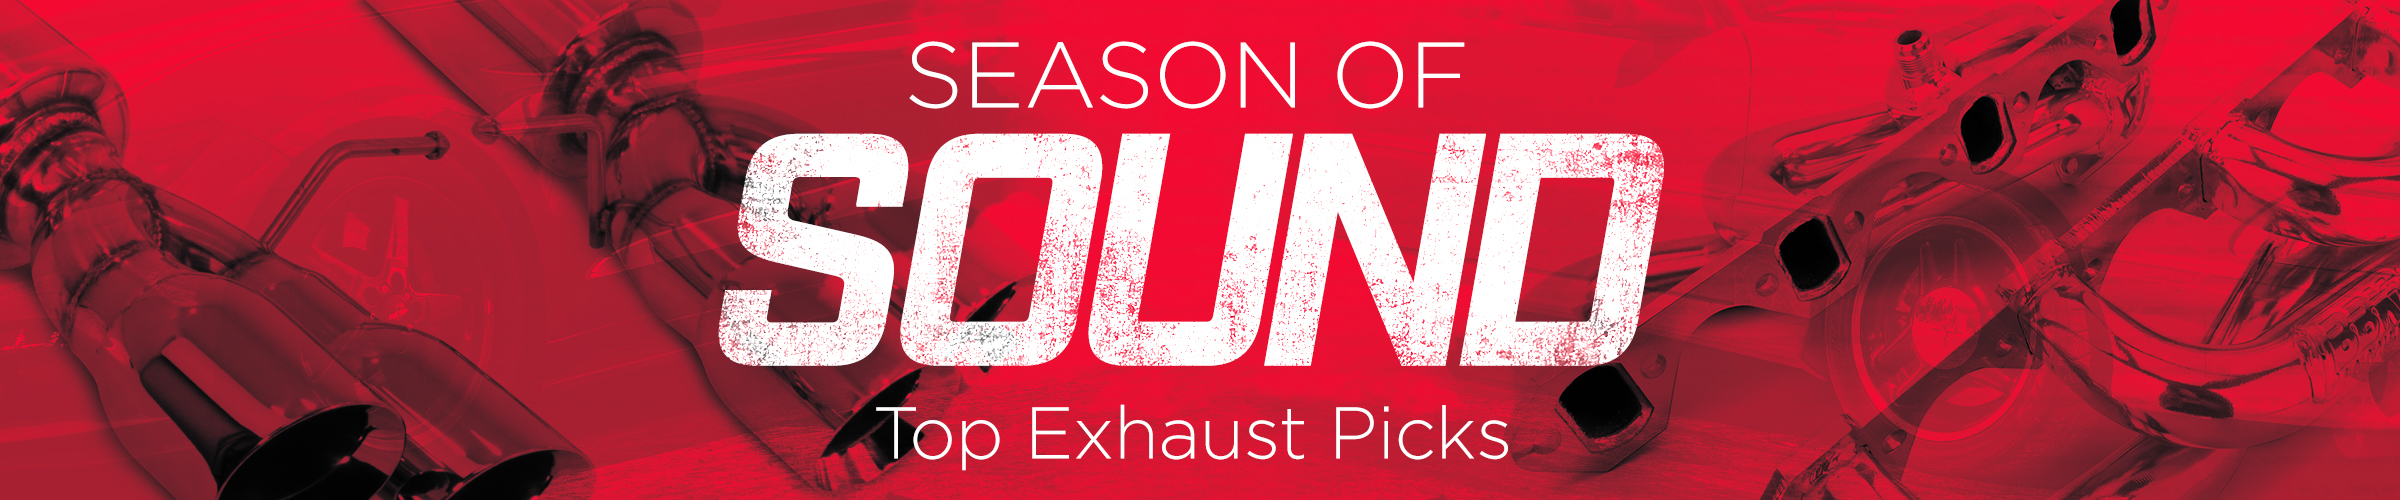 Season of SOUND! Top Exhaust picks in April!